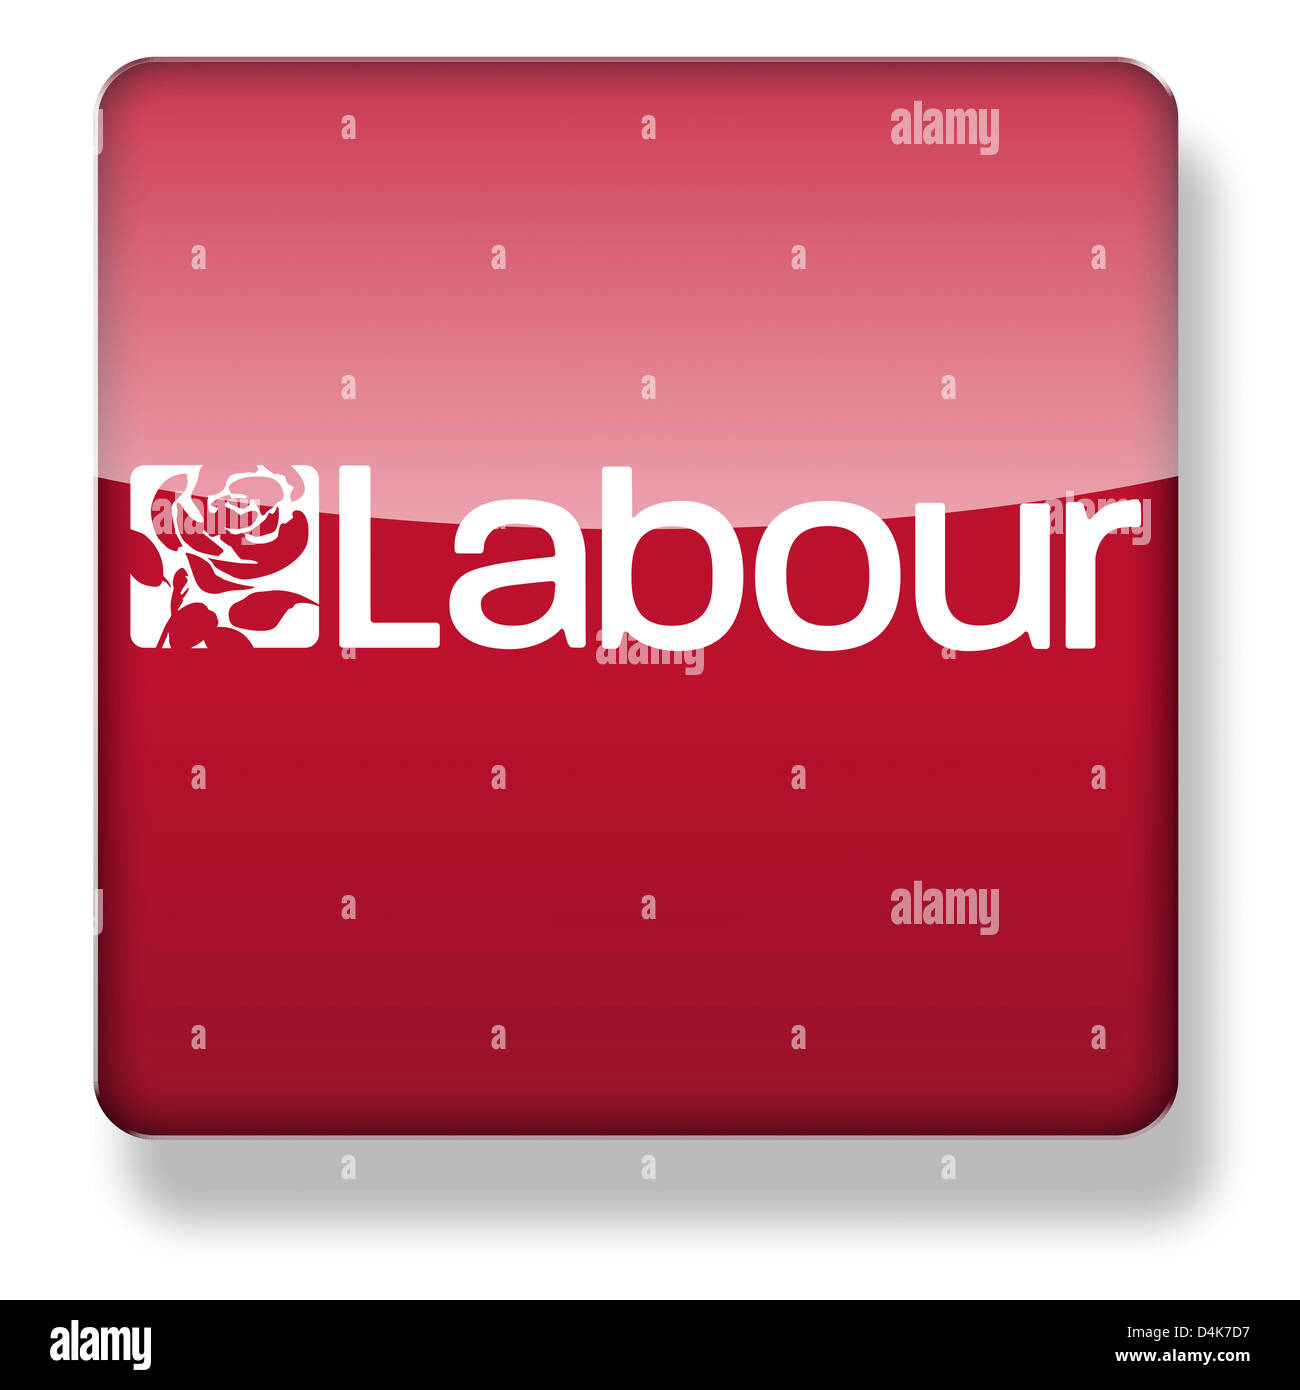 Labour Party logo as an app icon. Clipping path included. - Stock Image